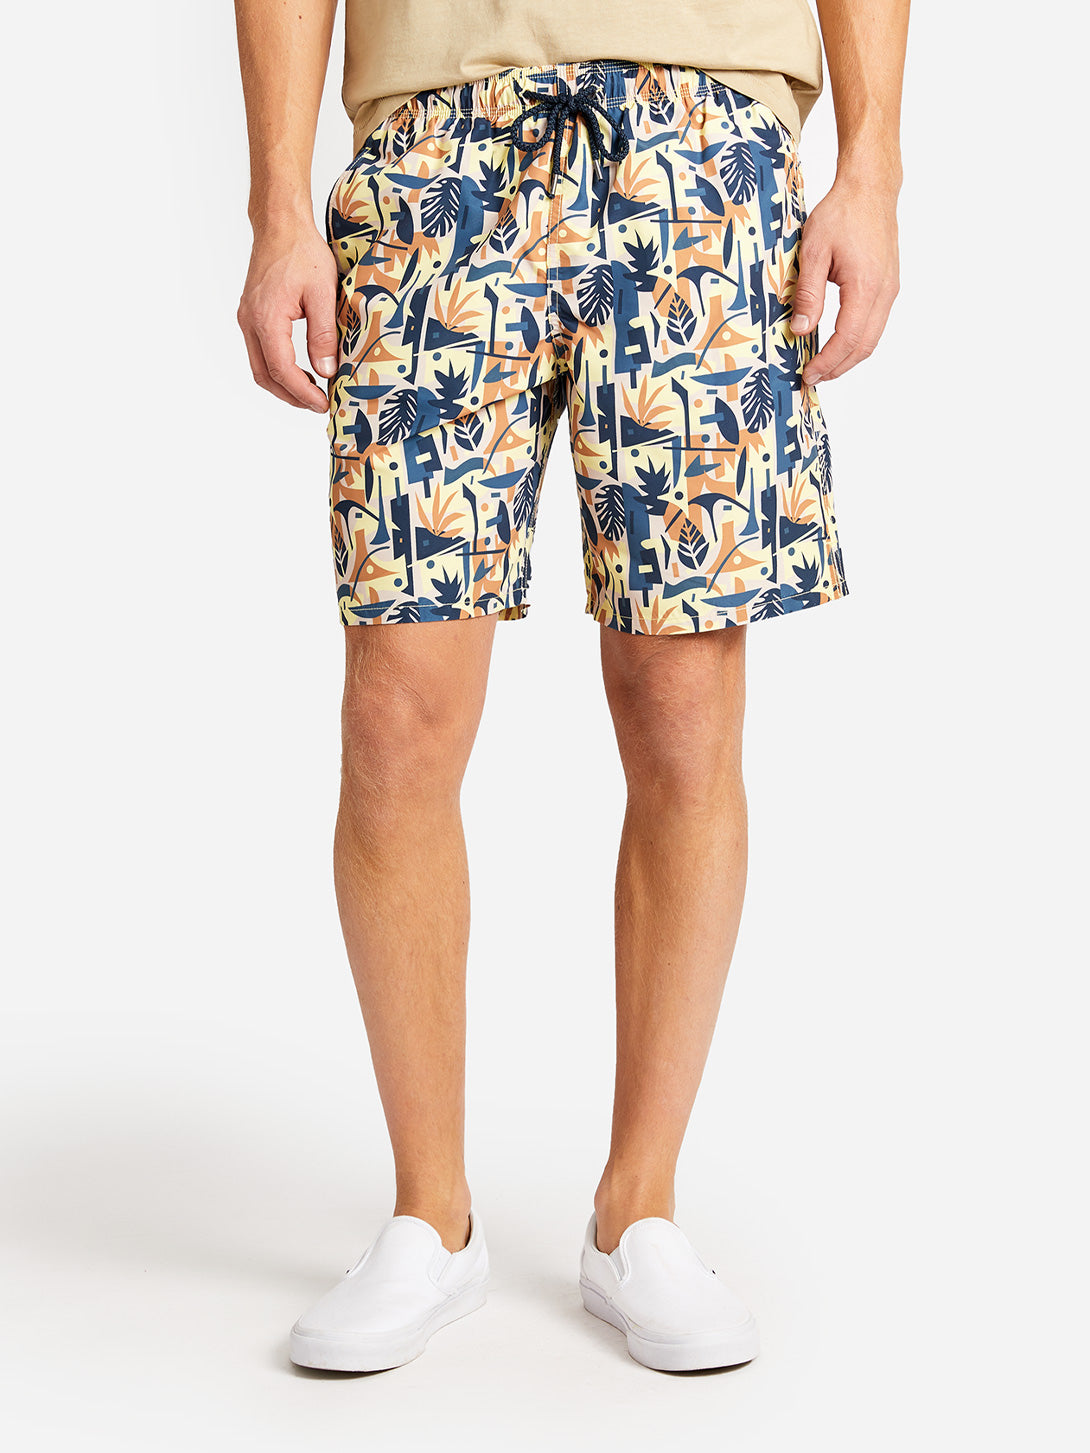 BRIGHTON SWIM SHORT YELLOW PRINT ONS CLOTHING